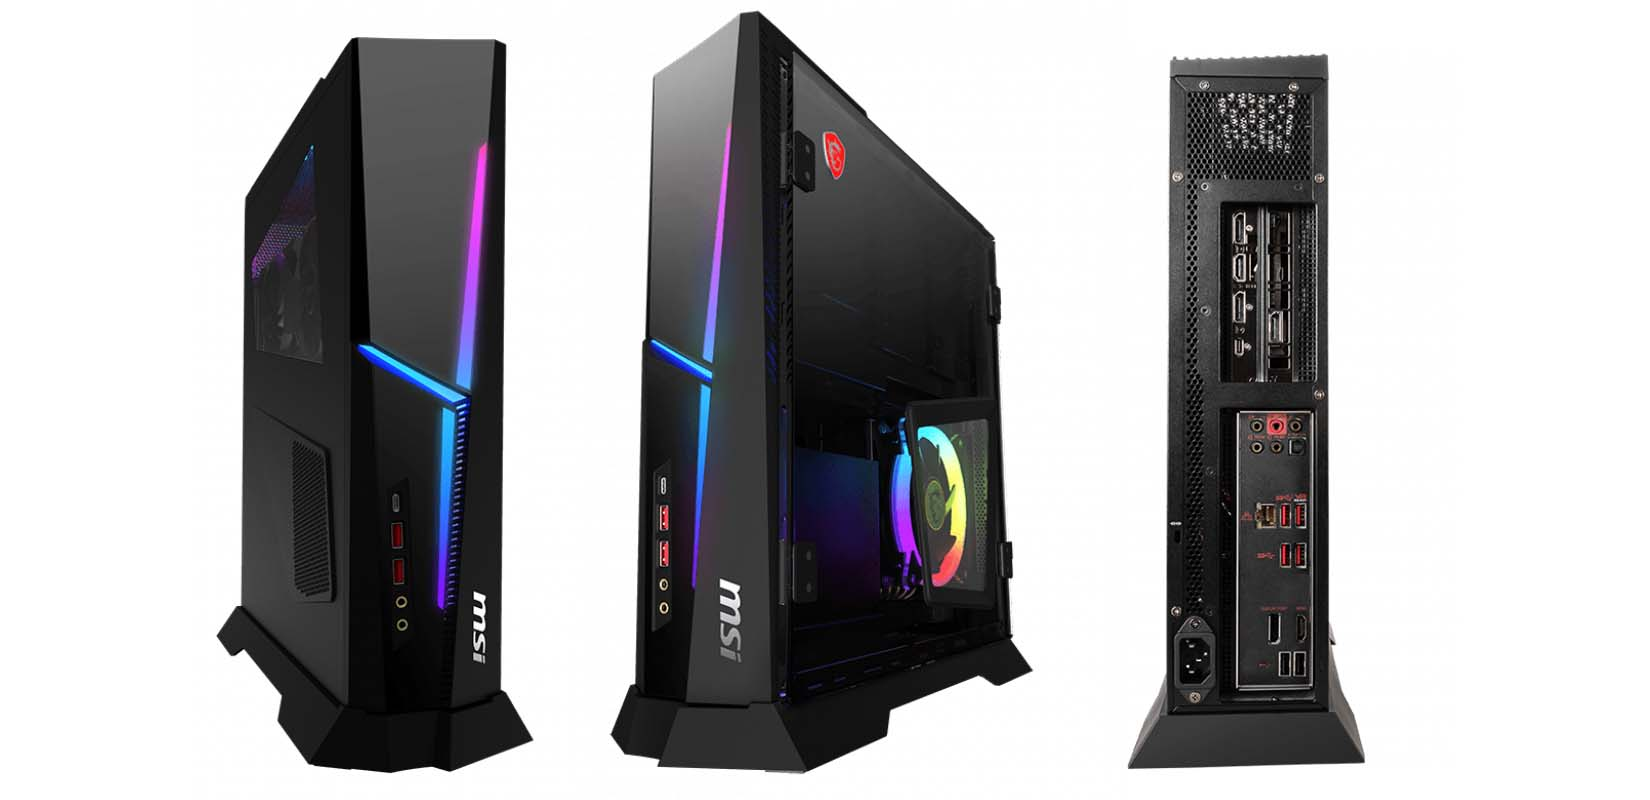 MSI Outs Next-Gen Infinite X 9th and Trident X 9th Gaming